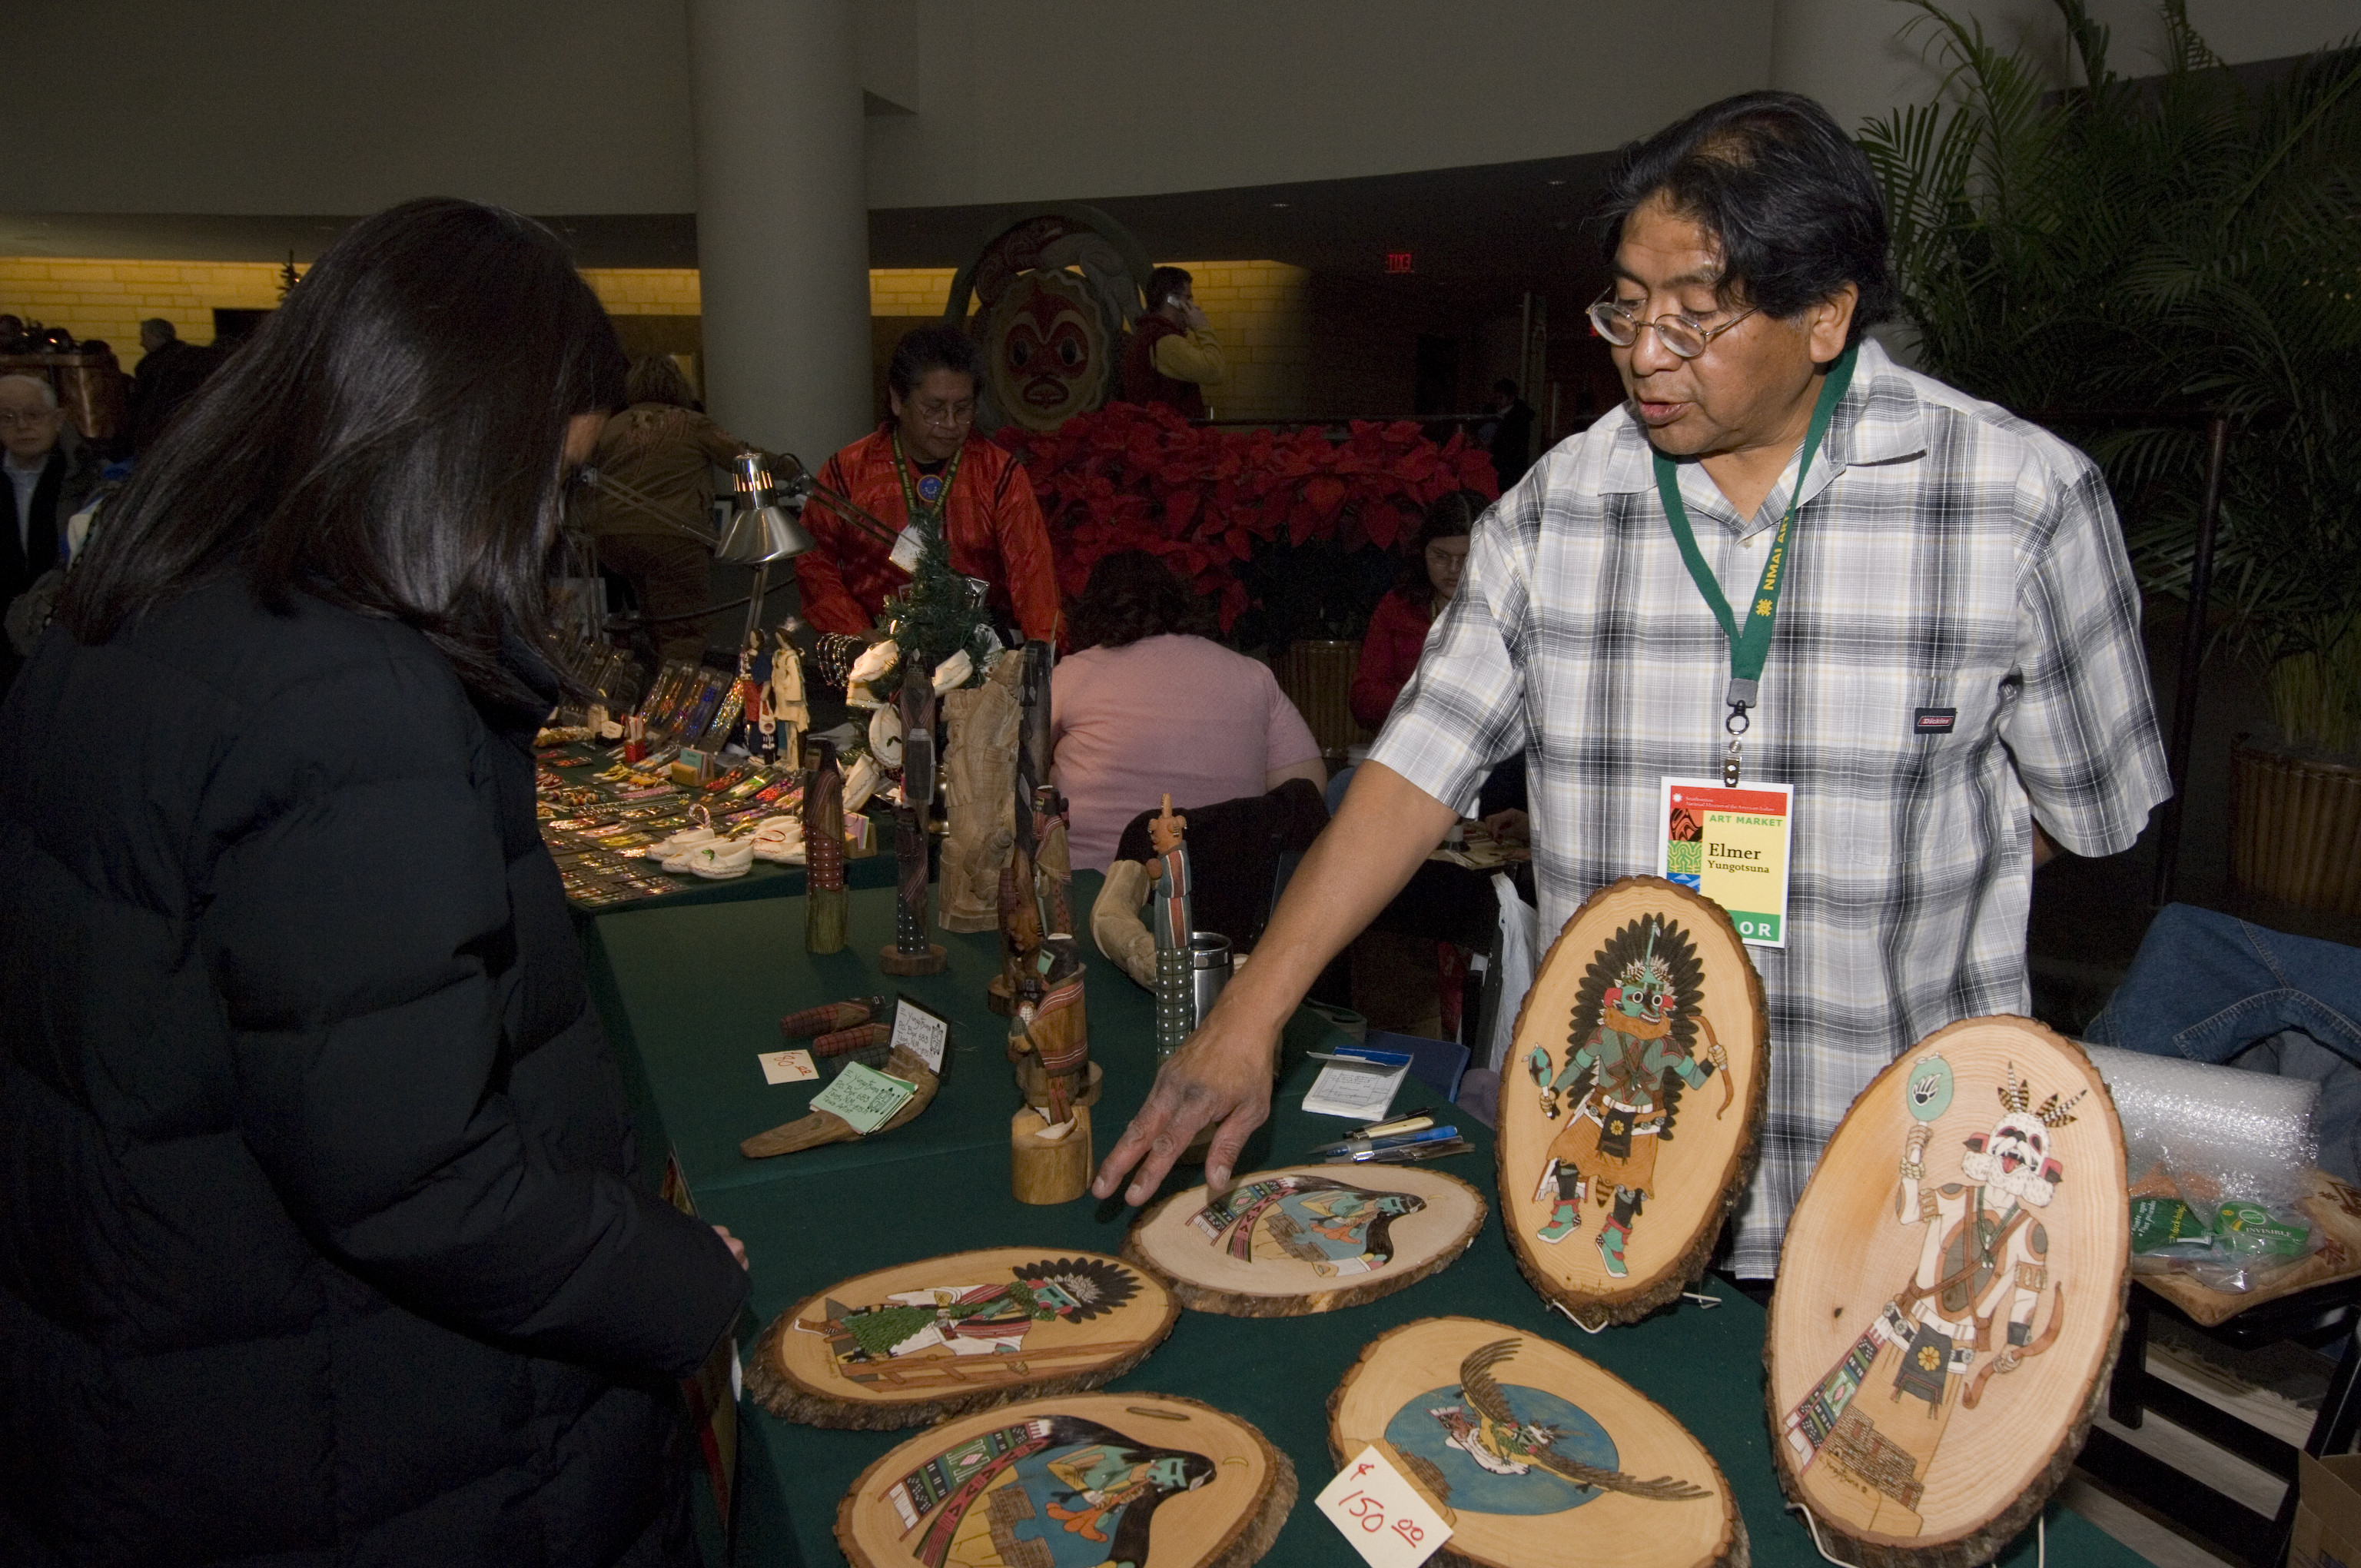 Art Market at National Museum of the American Indian